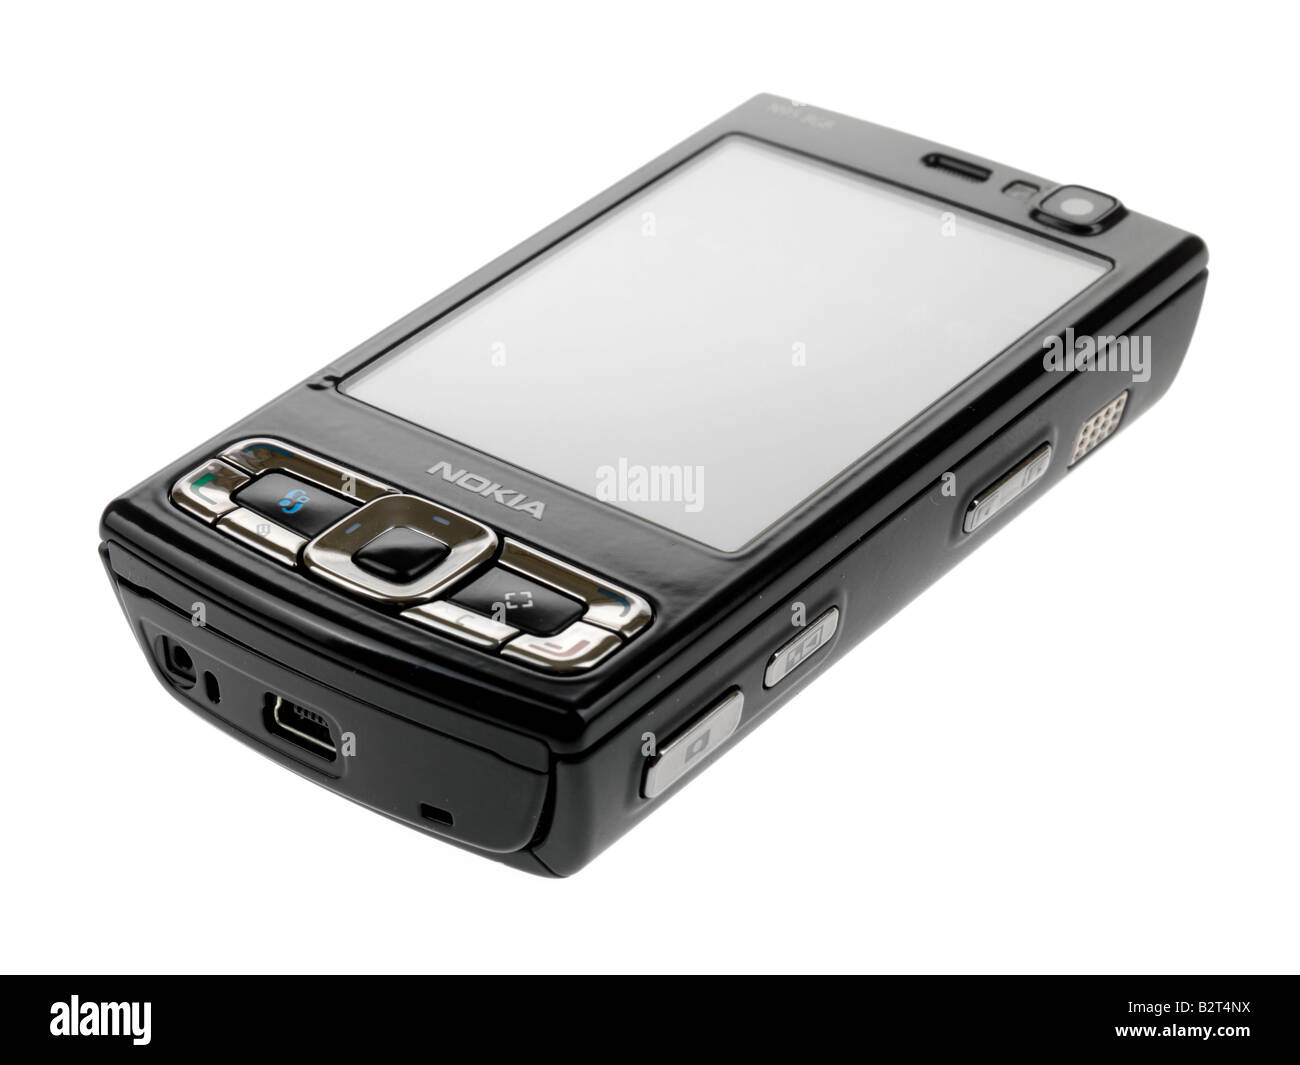 Nokia N95 Stock Photos & Nokia N95 Stock Images - Alamy